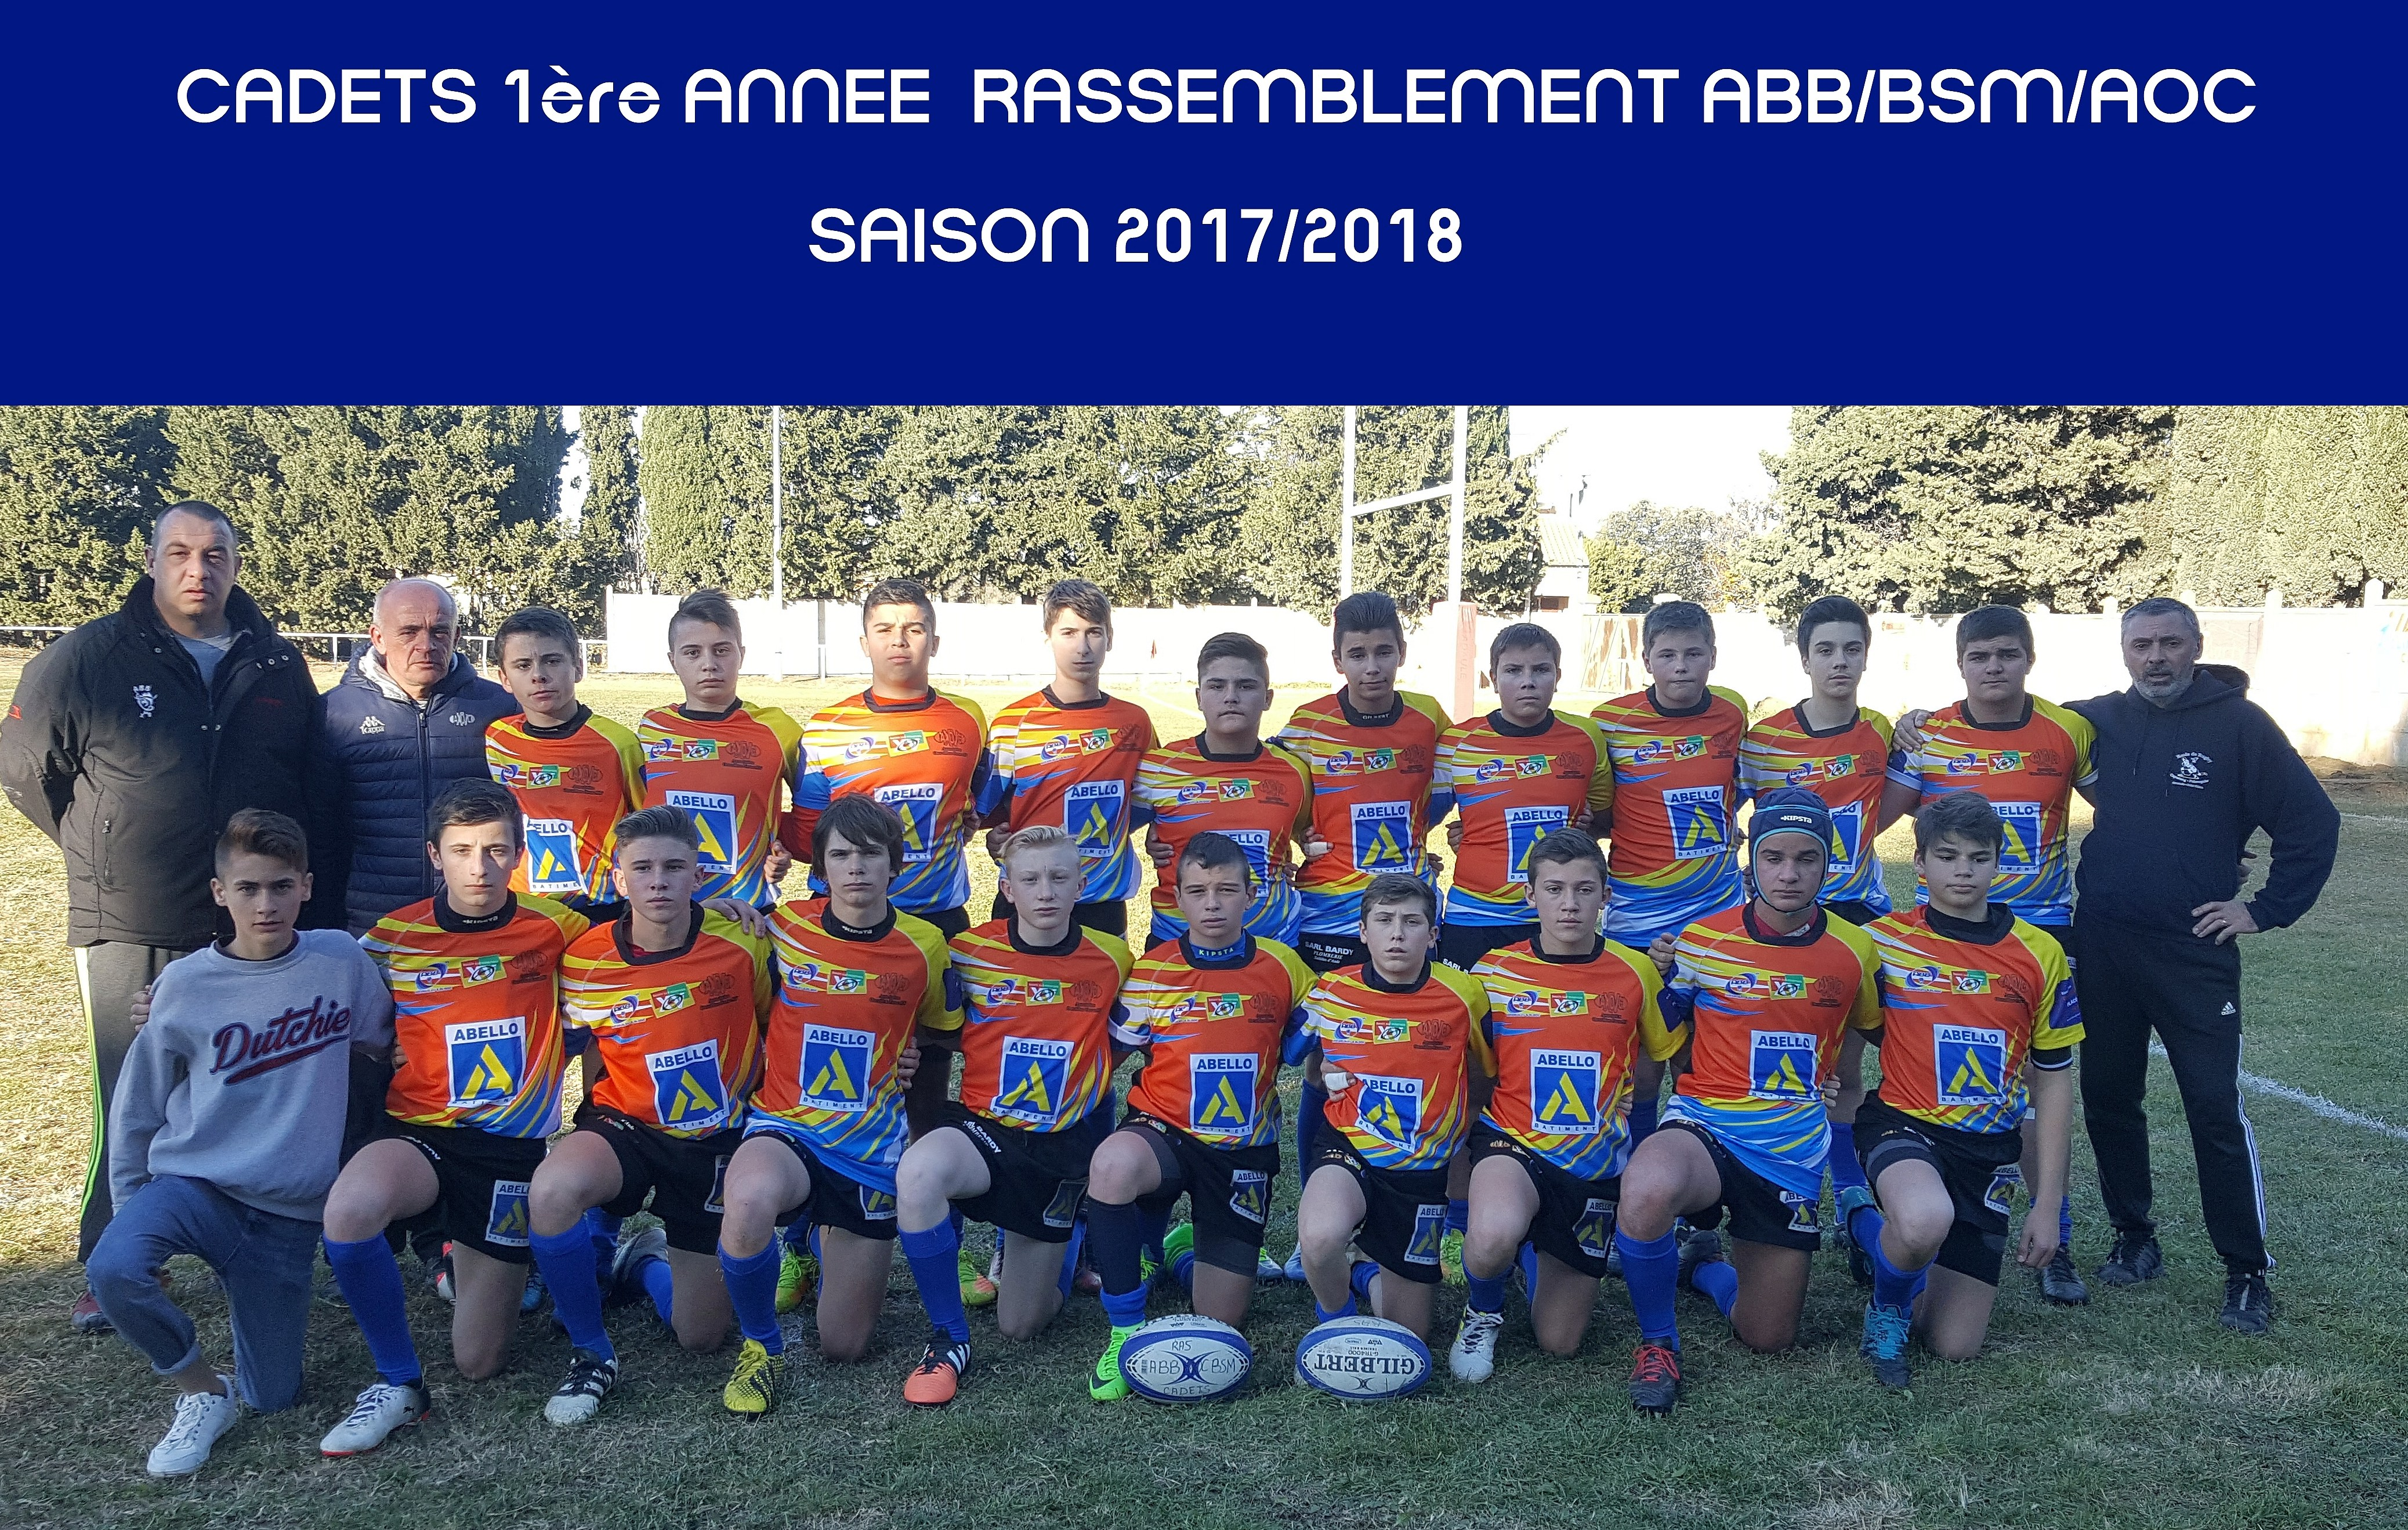 equipes 2018 - Cadets 1ere annee A